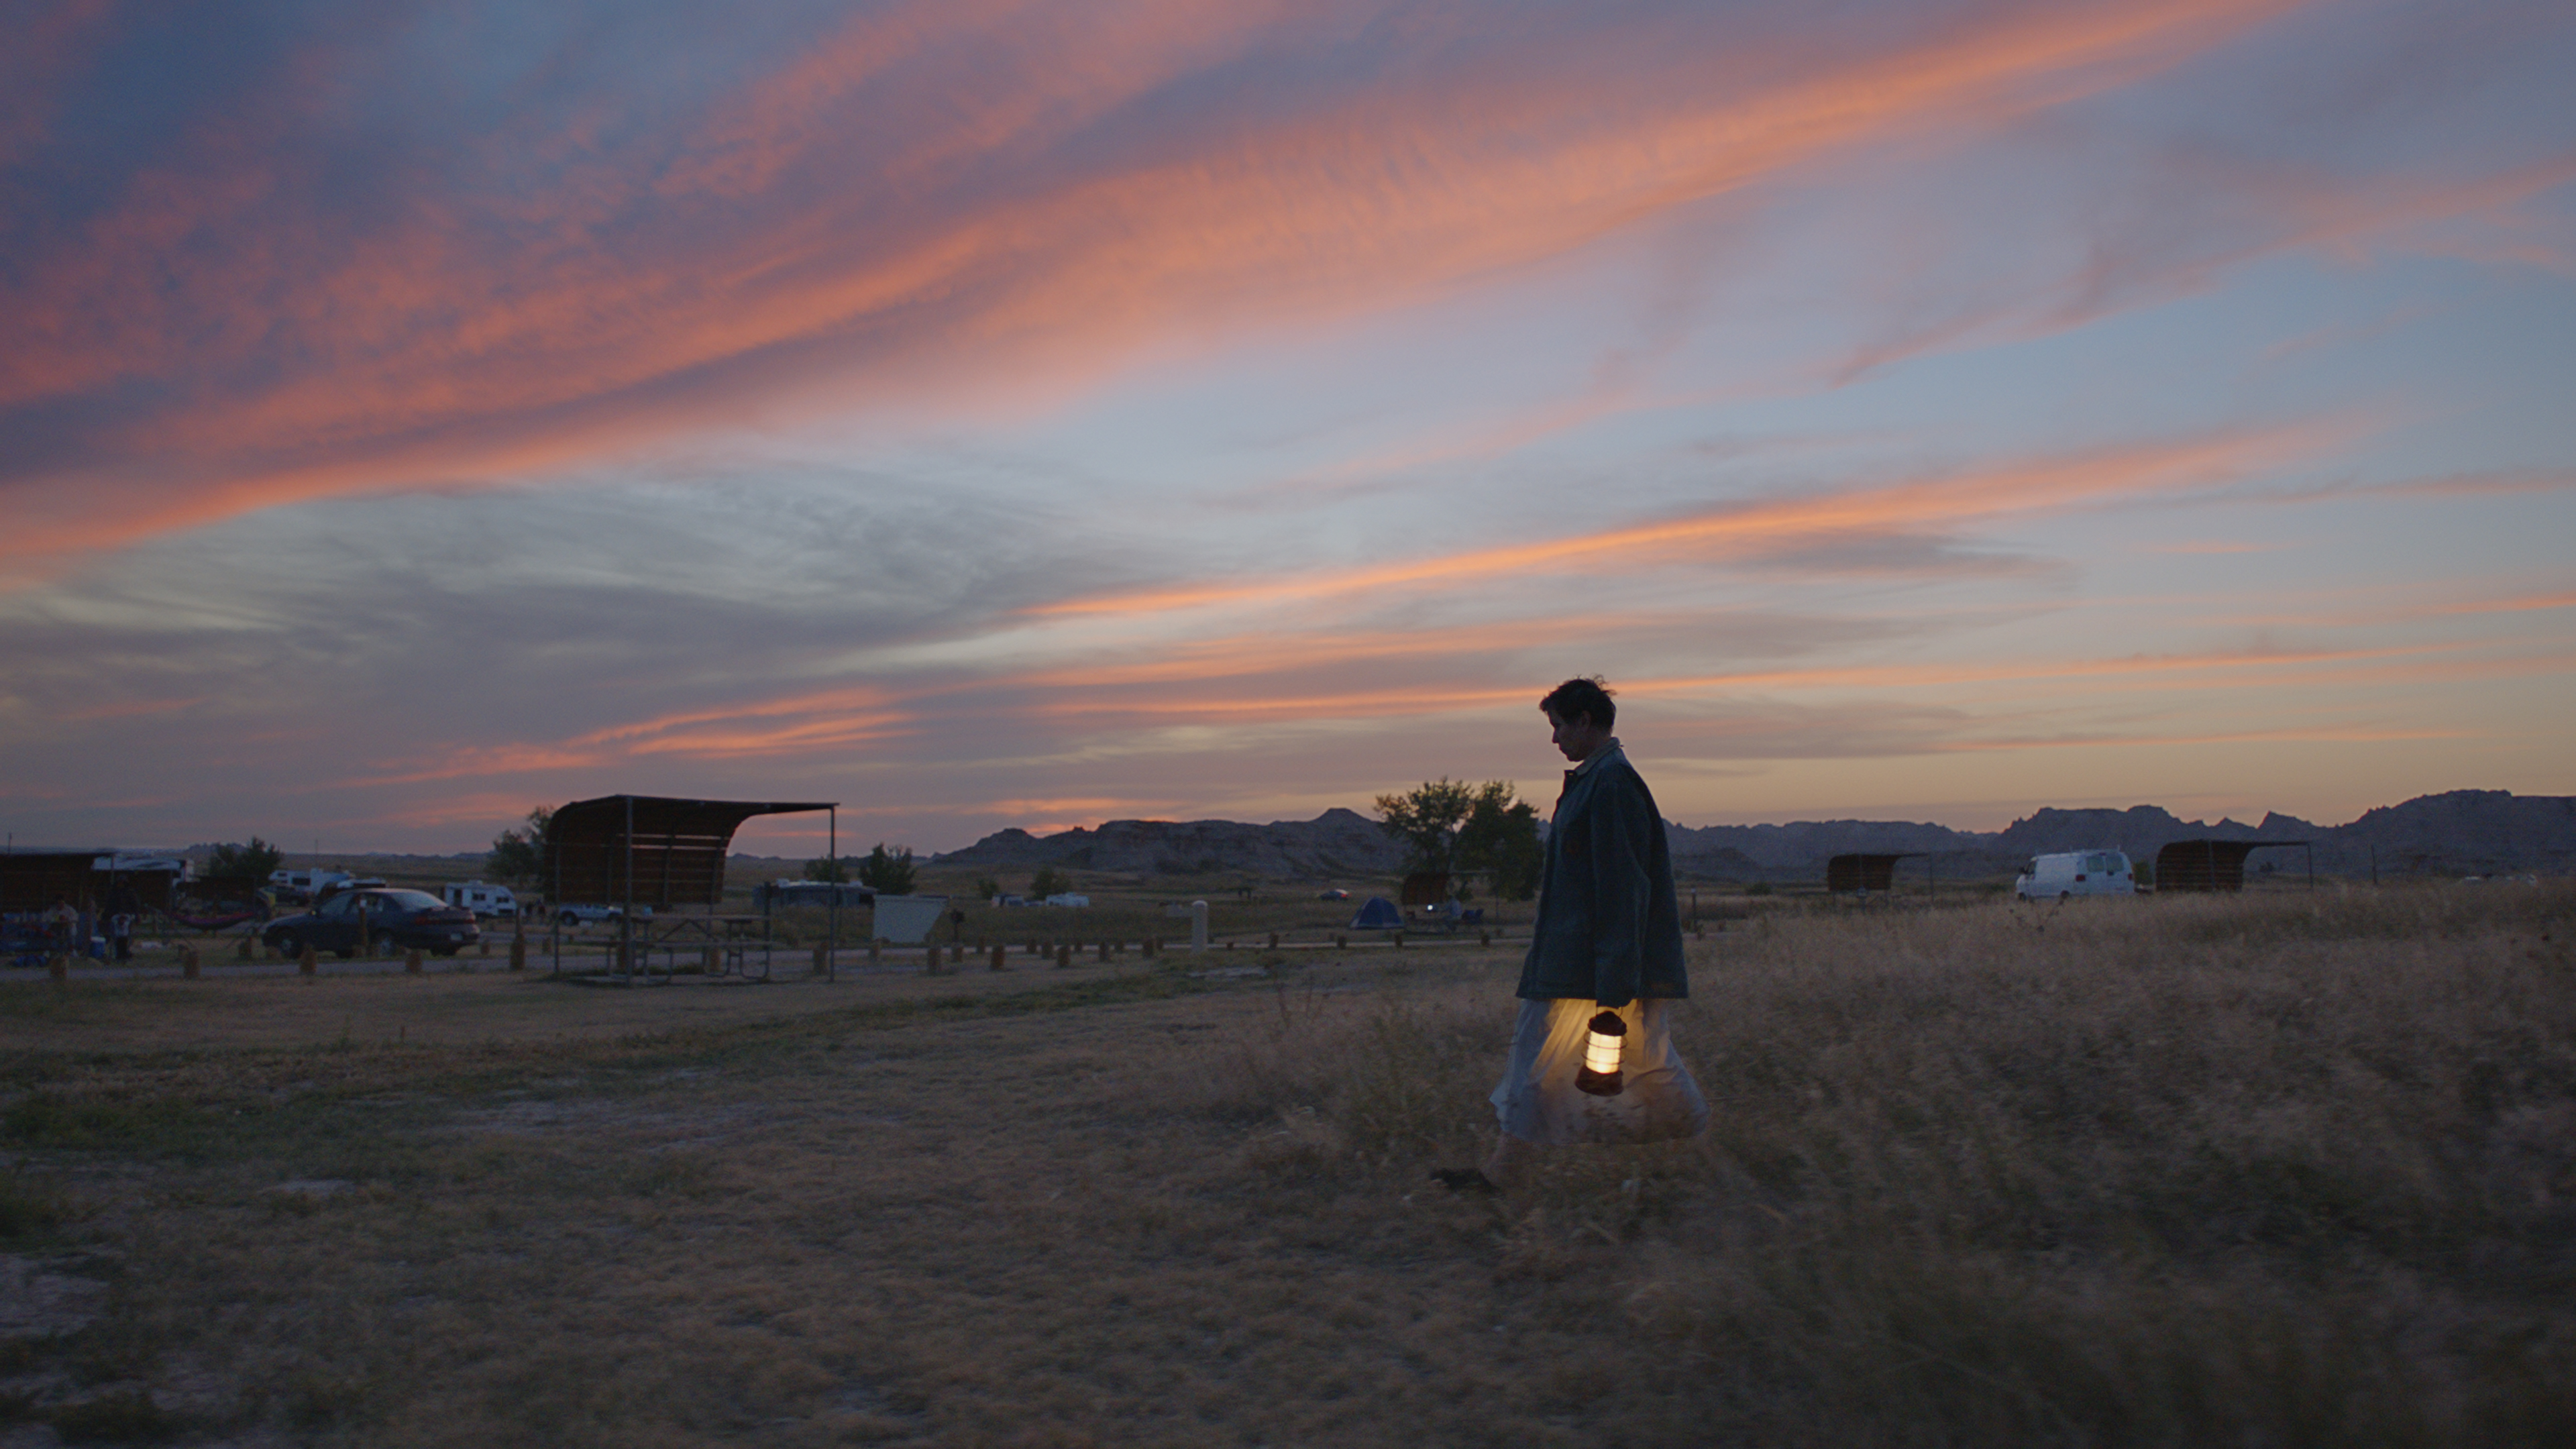 McDormand is houseless but not homeless in 'Nomadland'